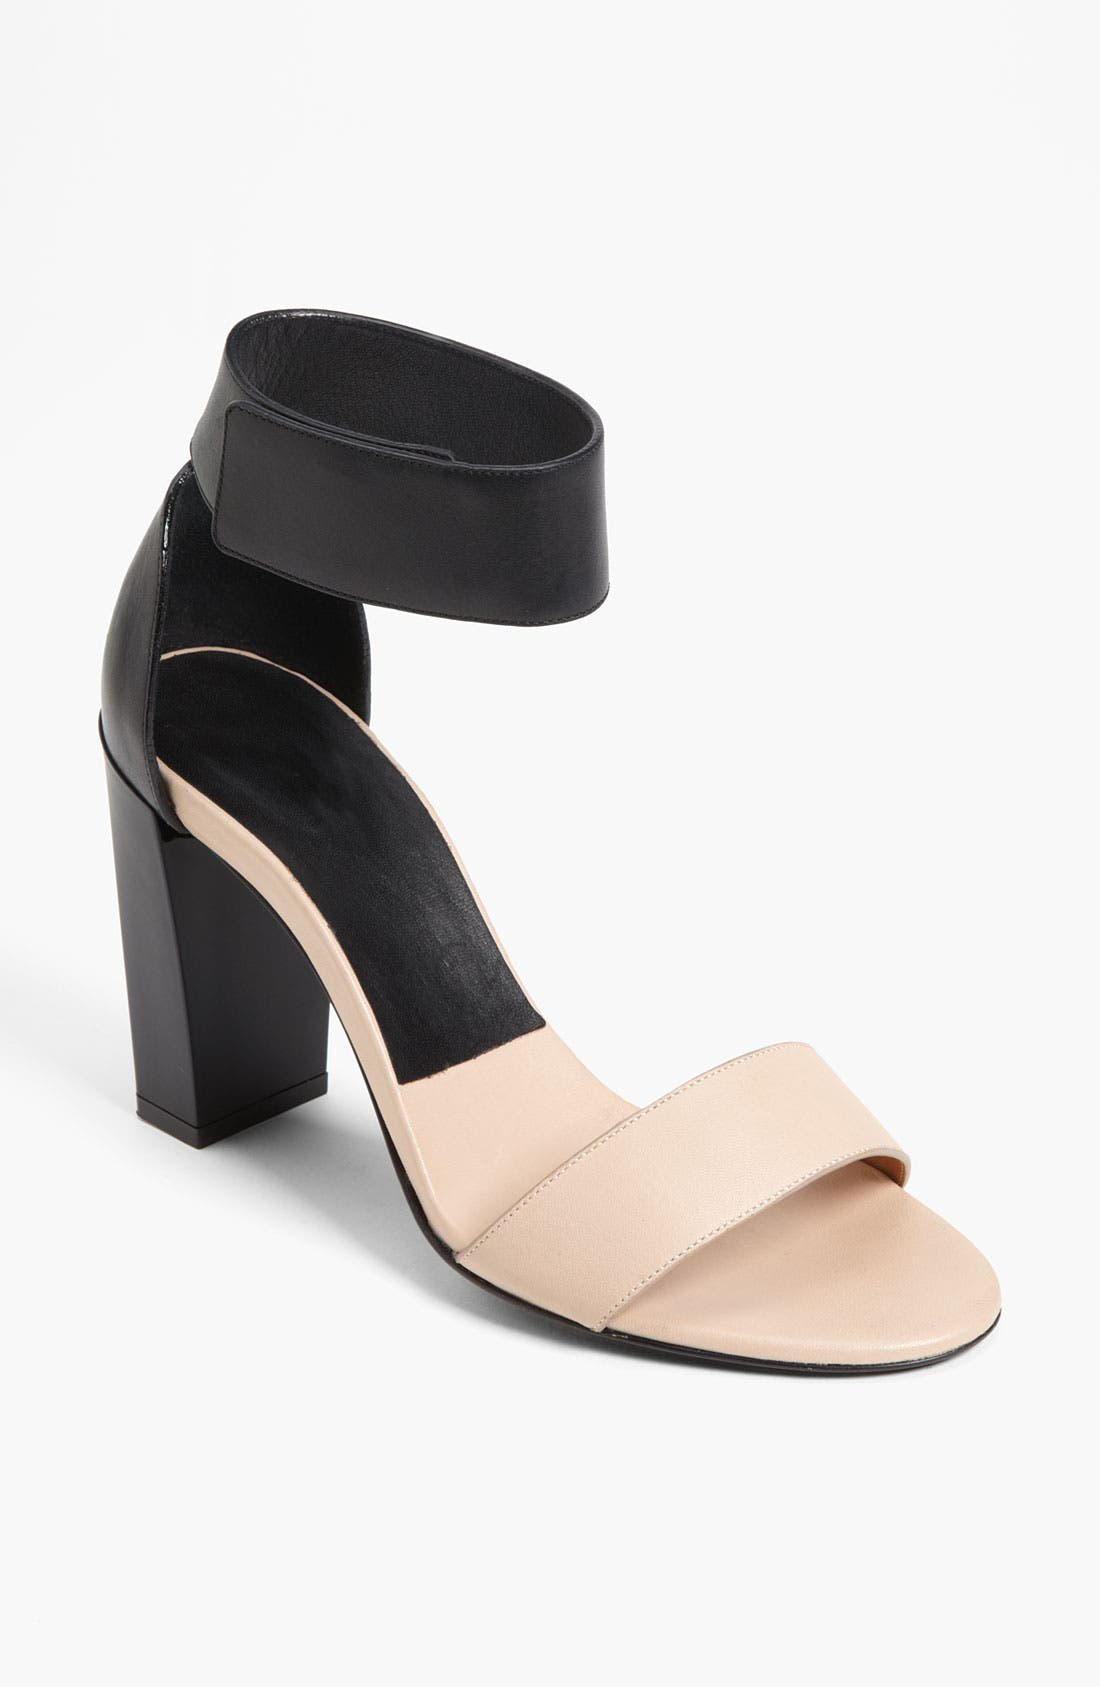 Alternate Image 1 Selected - Chloé Ankle Strap Sandal